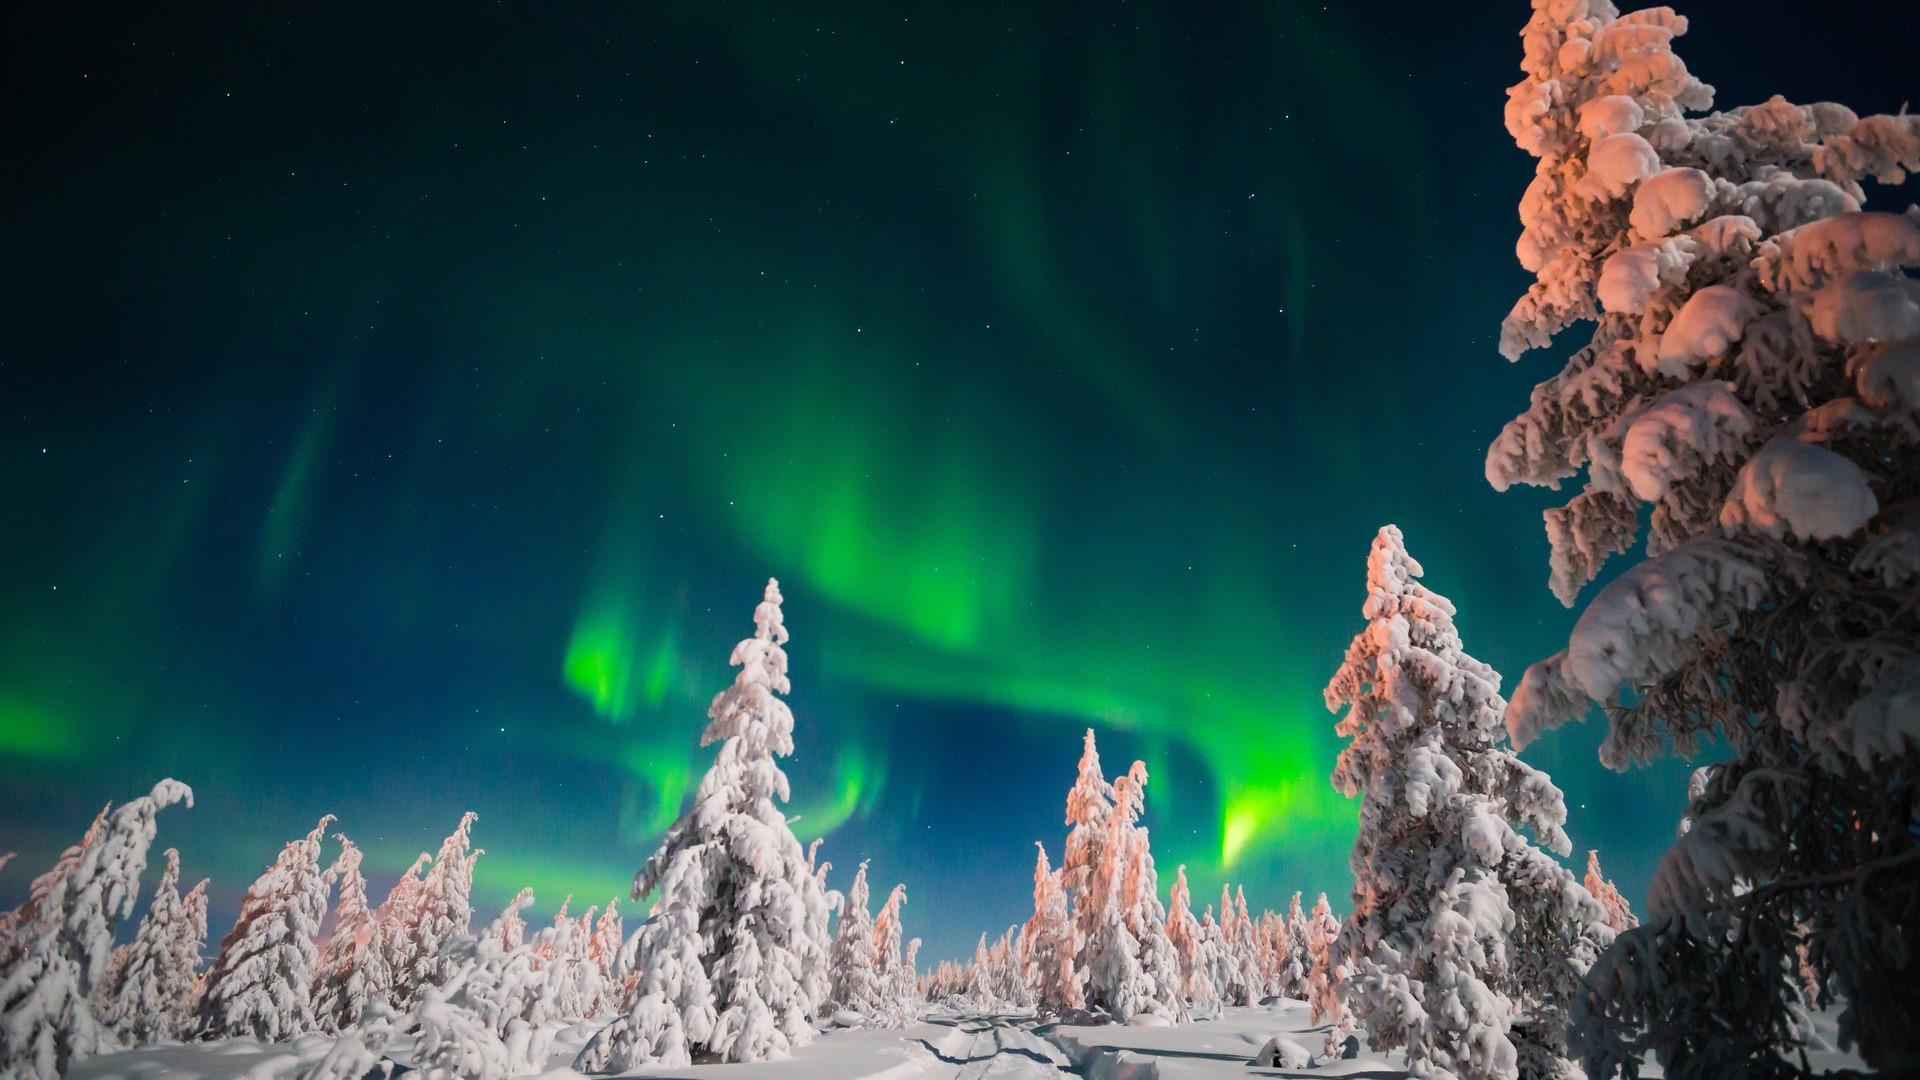 1920x1080 Aurora Borealis Over The Snowy Forest - Sakha, Russia Wallpaper ...